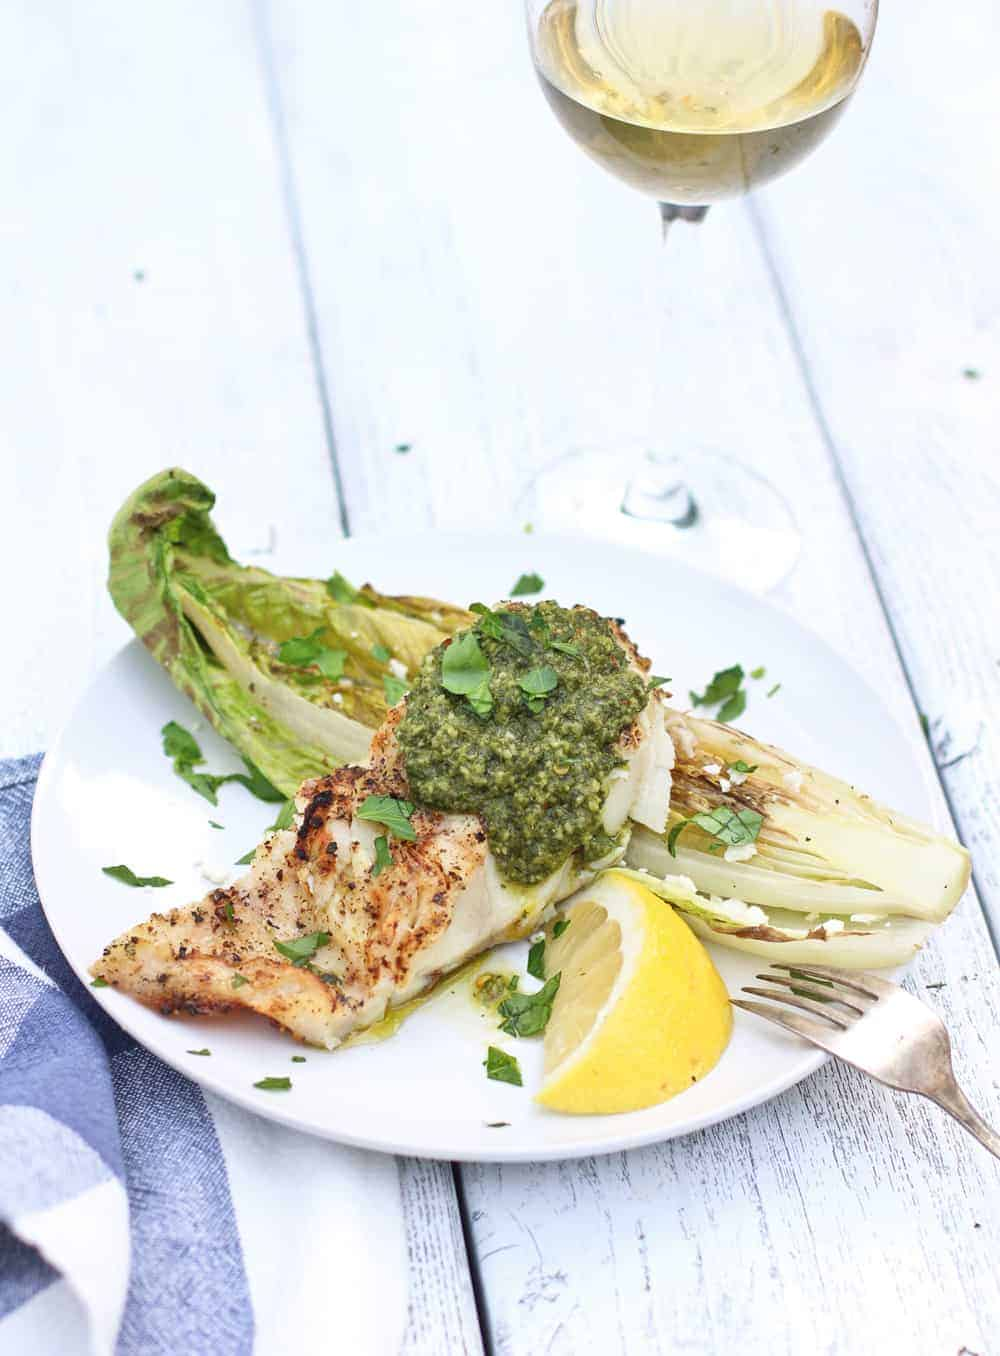 Grilled Cod Fillet with Chimichurri Sauce served on a plate with Grilled Romaine.